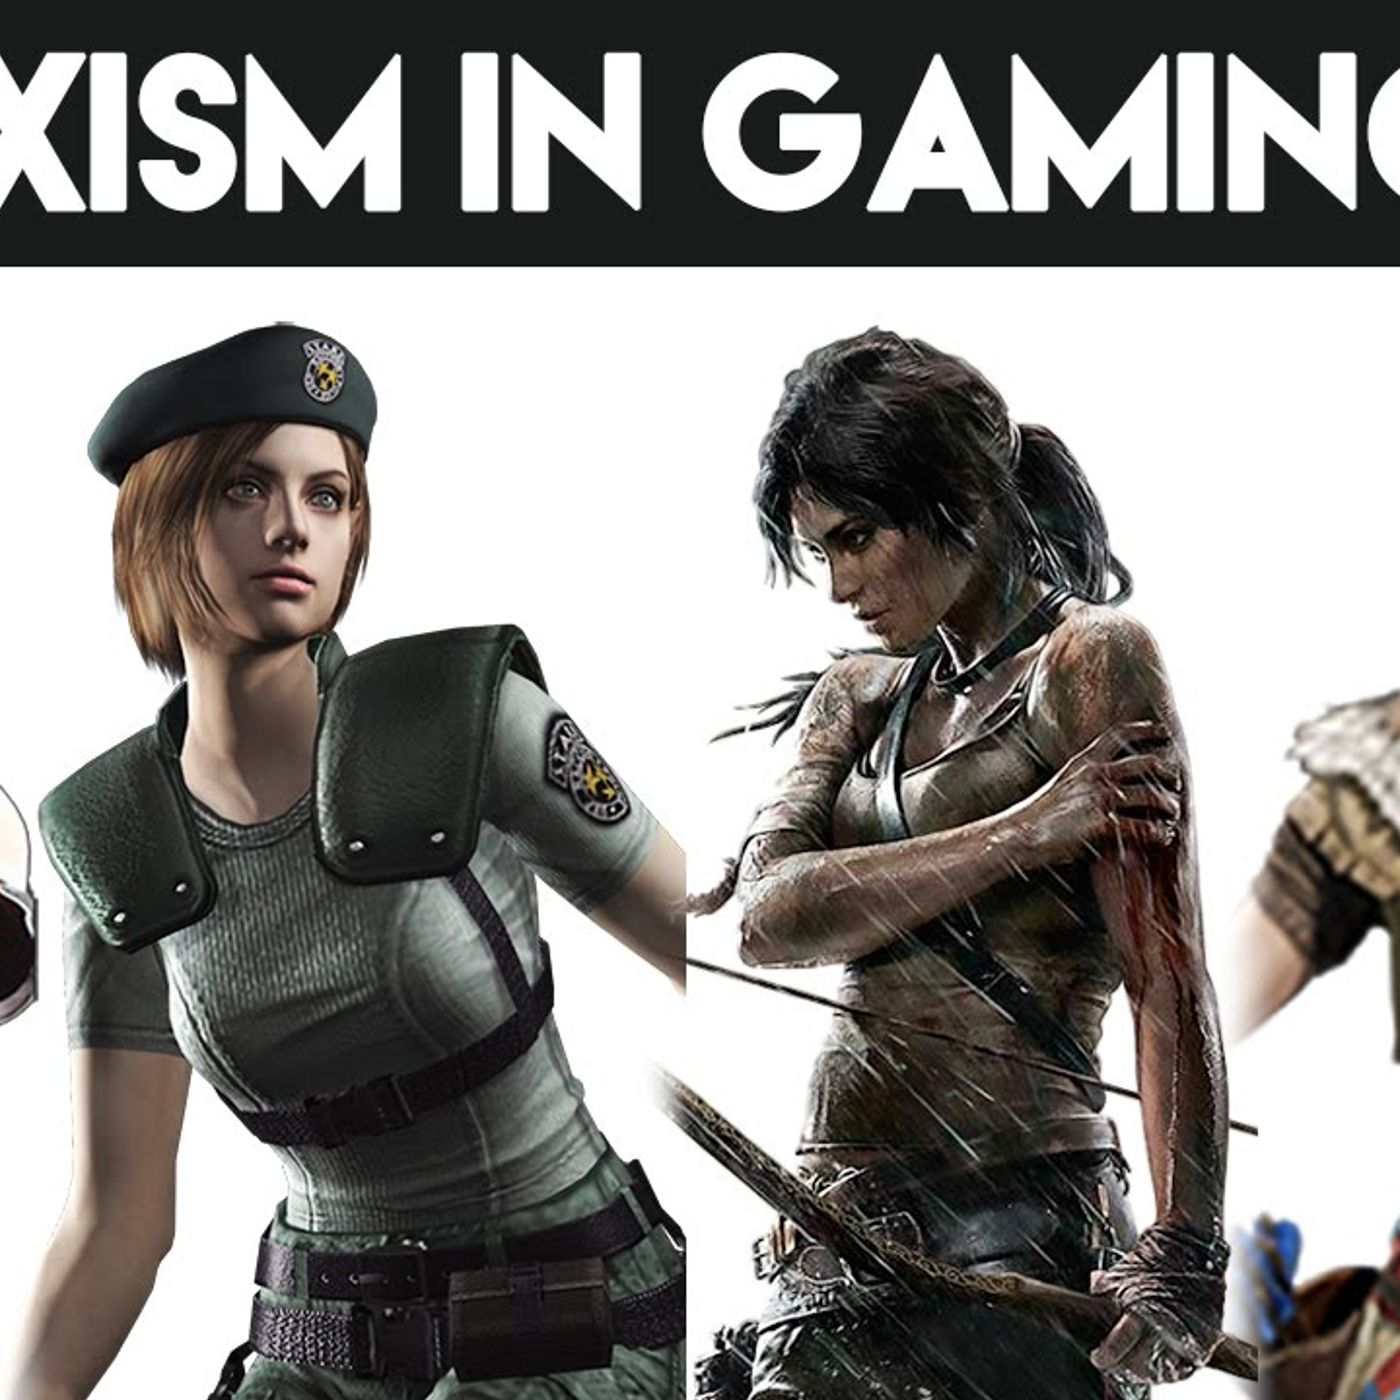 Sexism in video games (STUDENT TAKEOVER)